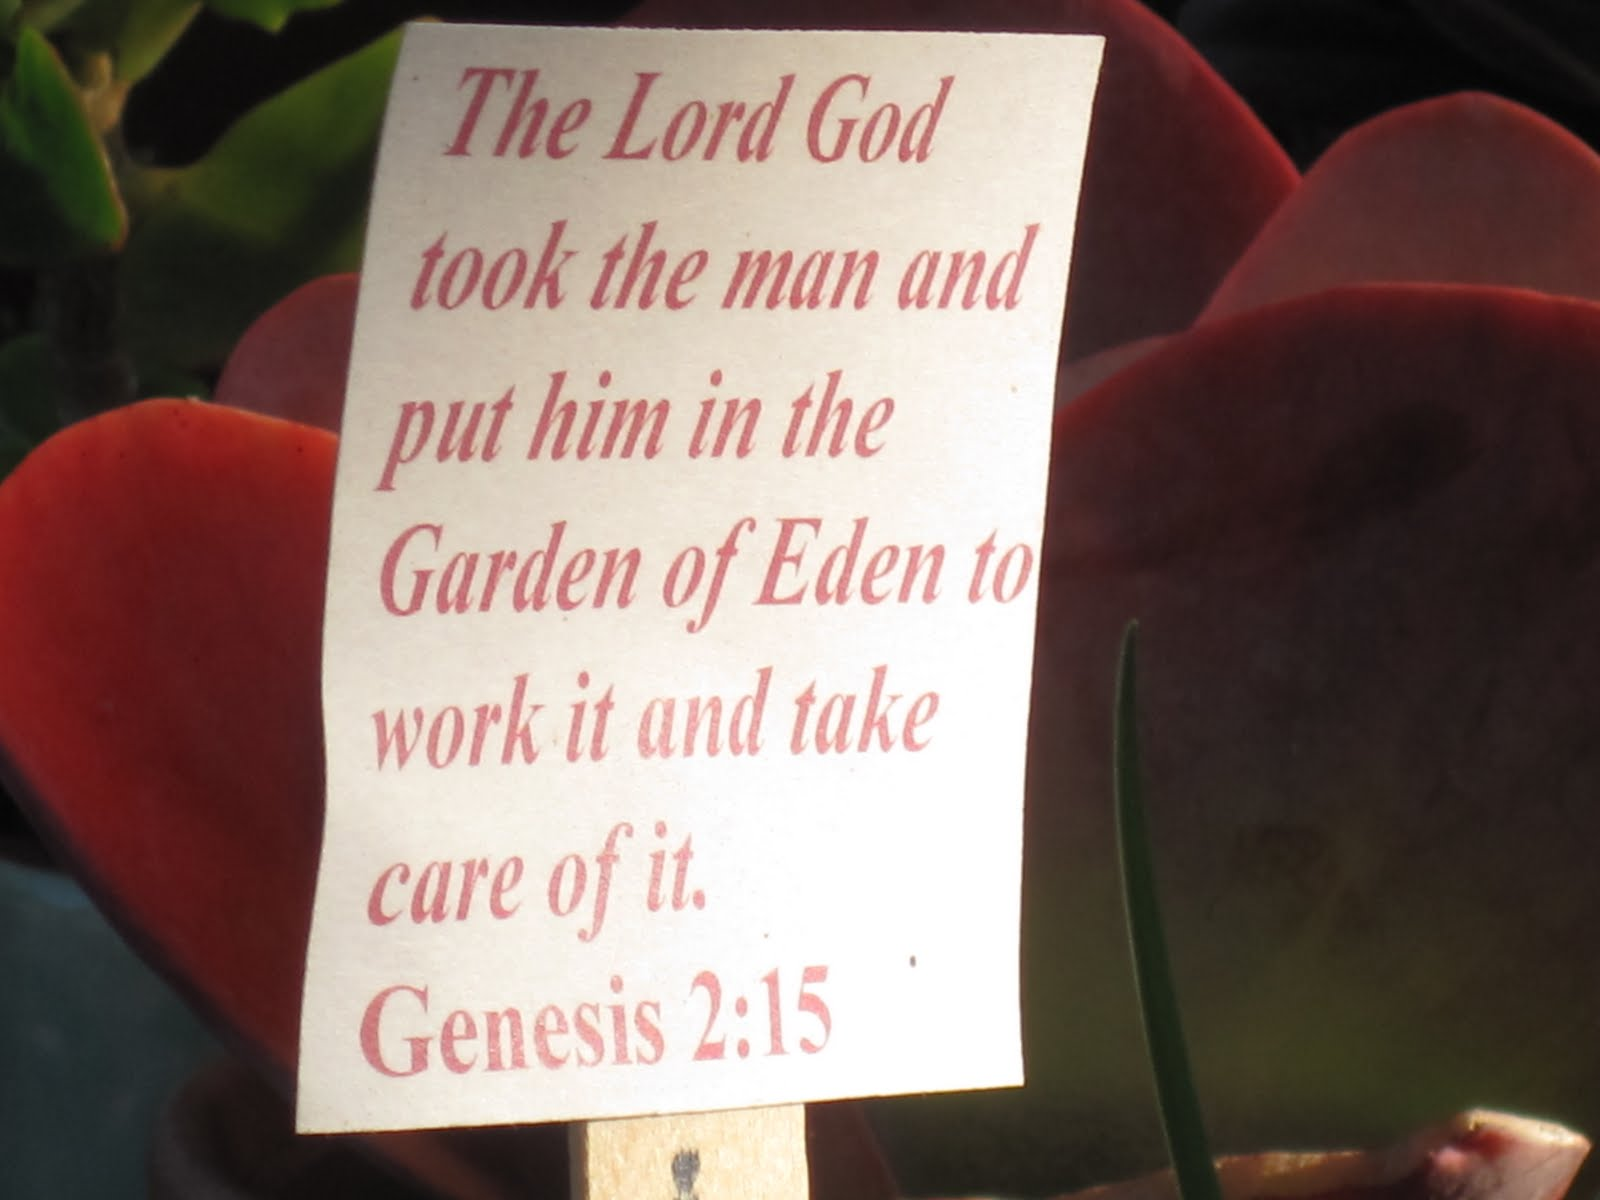 Eyes on christ garden related bible verses garden related bible verses izmirmasajfo Gallery